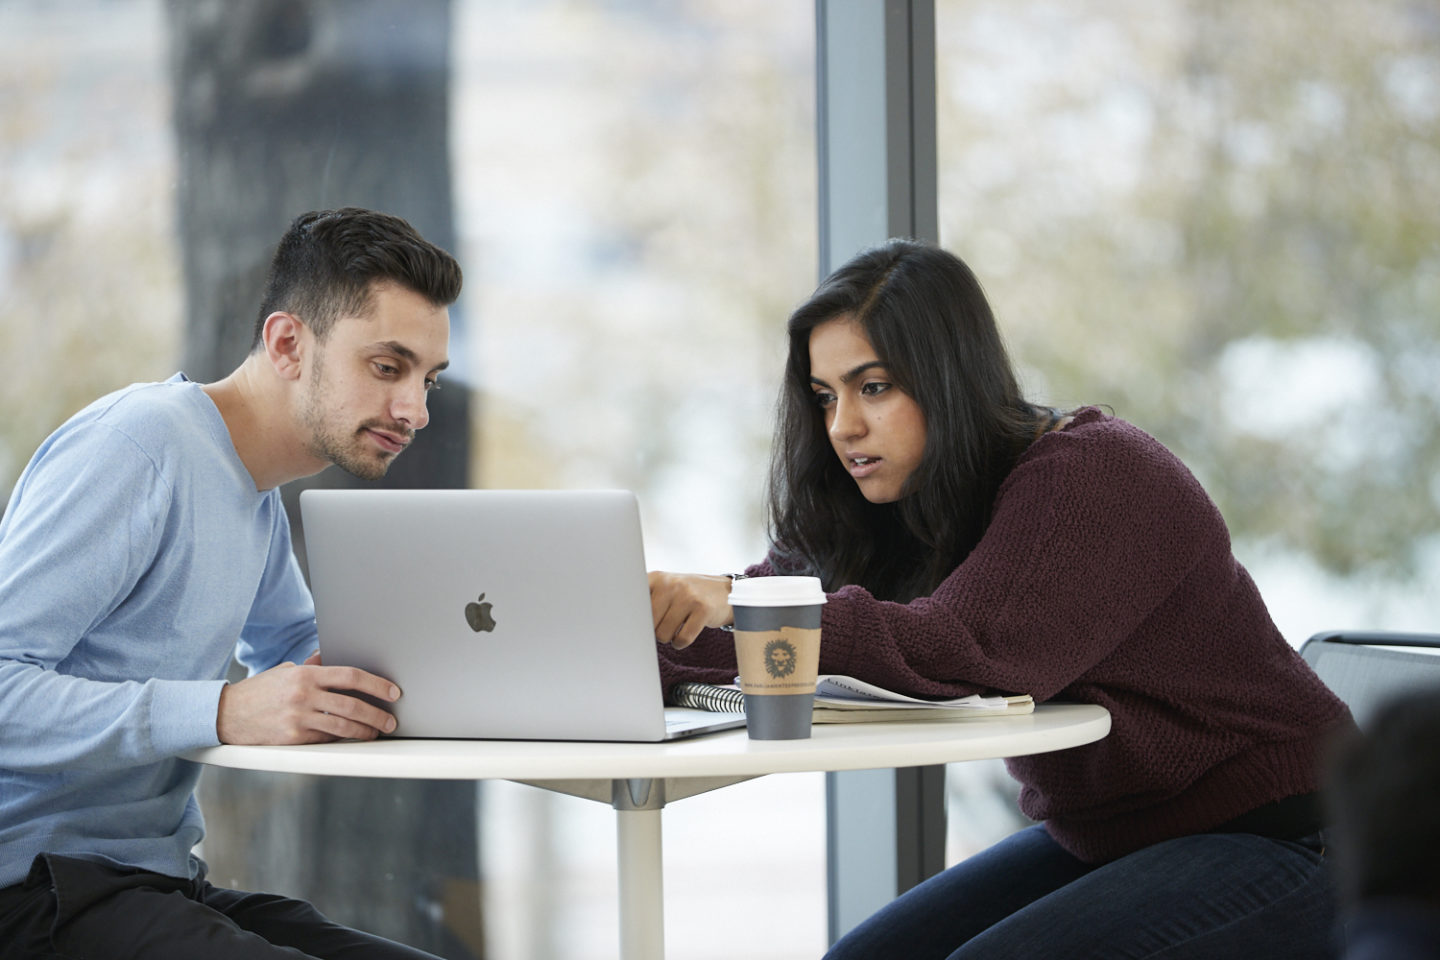 Two students collaborating on a laptop